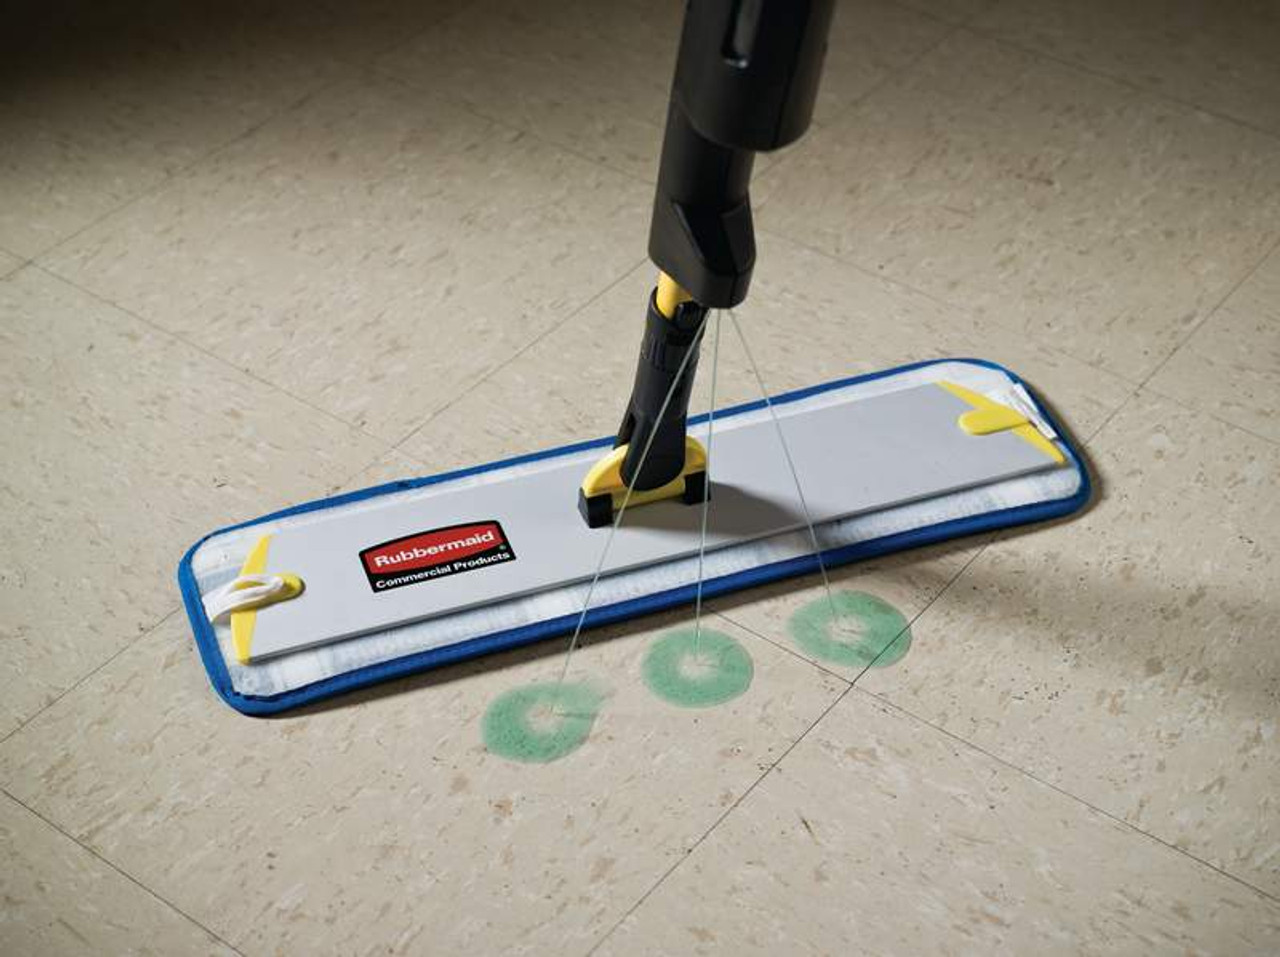 Rubbermaid Pulse Mopping Kit - FGQ96958YL00